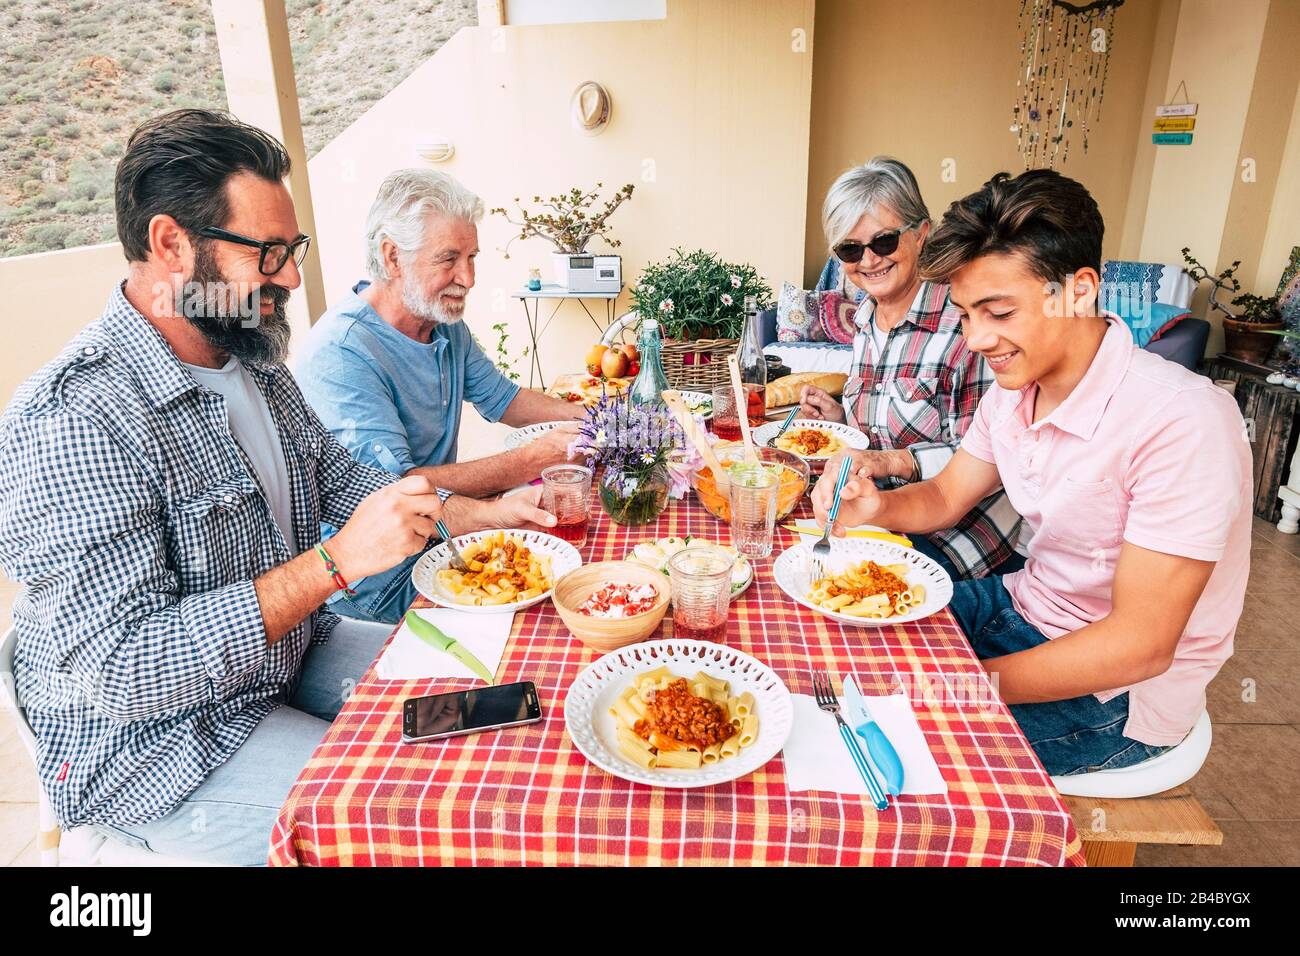 Family People Outdoor Lunch Together On A Red Table Mixed Ages Generations Enjoy And Have Fun With Italian Pasta On The Terrace At Home Father Grandfather And Son Stock Photo Alamy